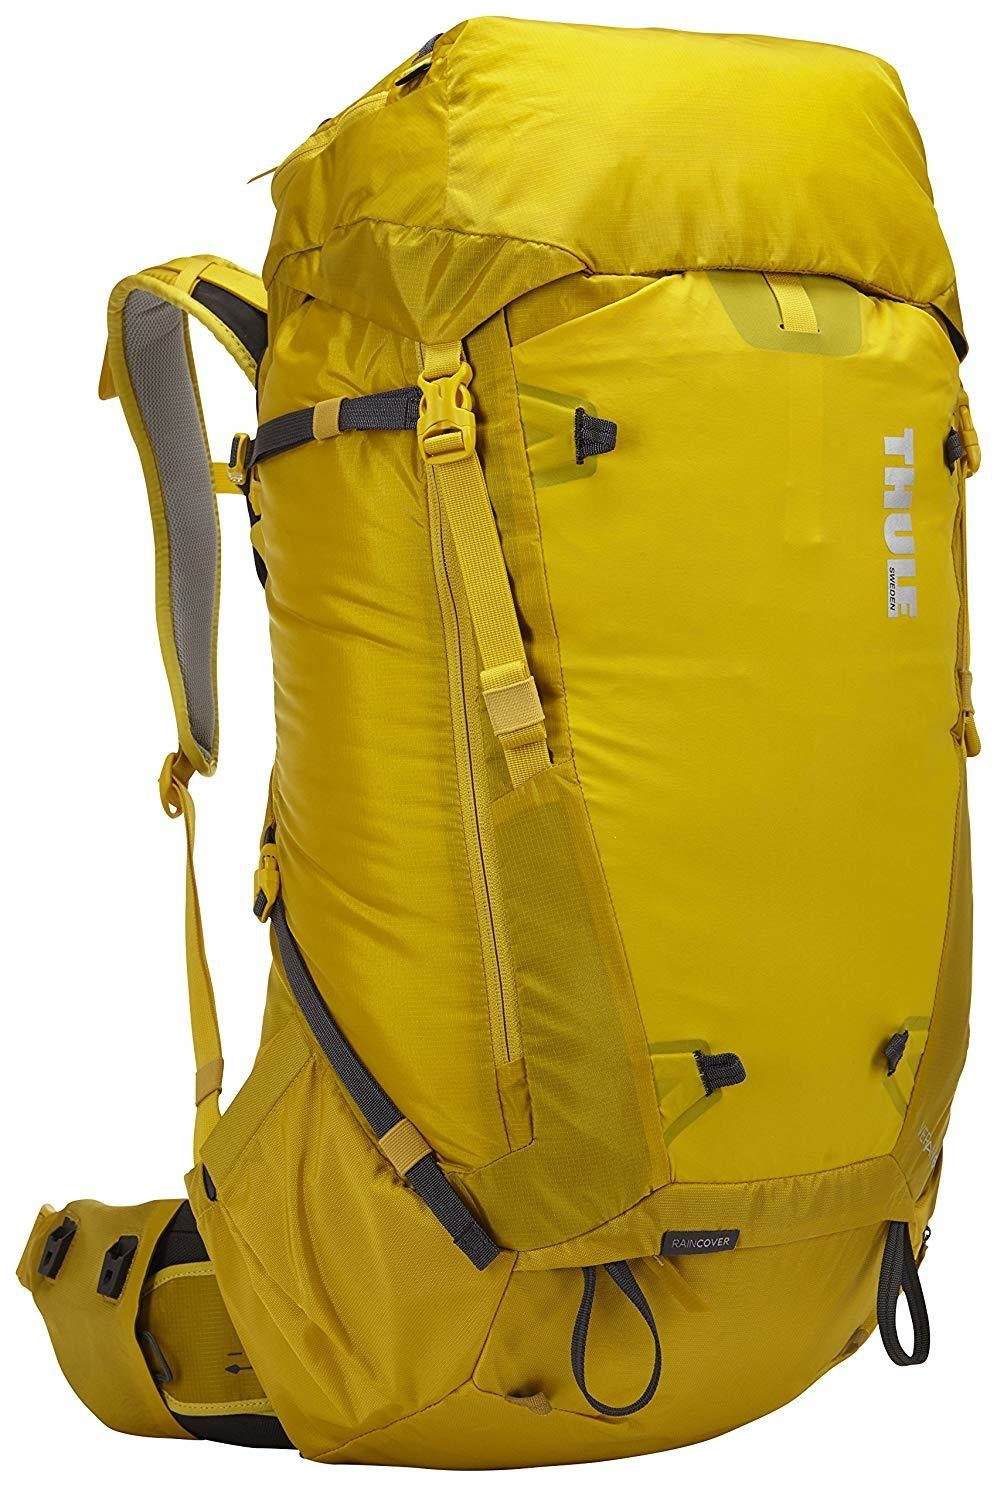 Thule Versant 70L Expedition Backpack - Premium Backpack! Adjustable Fit